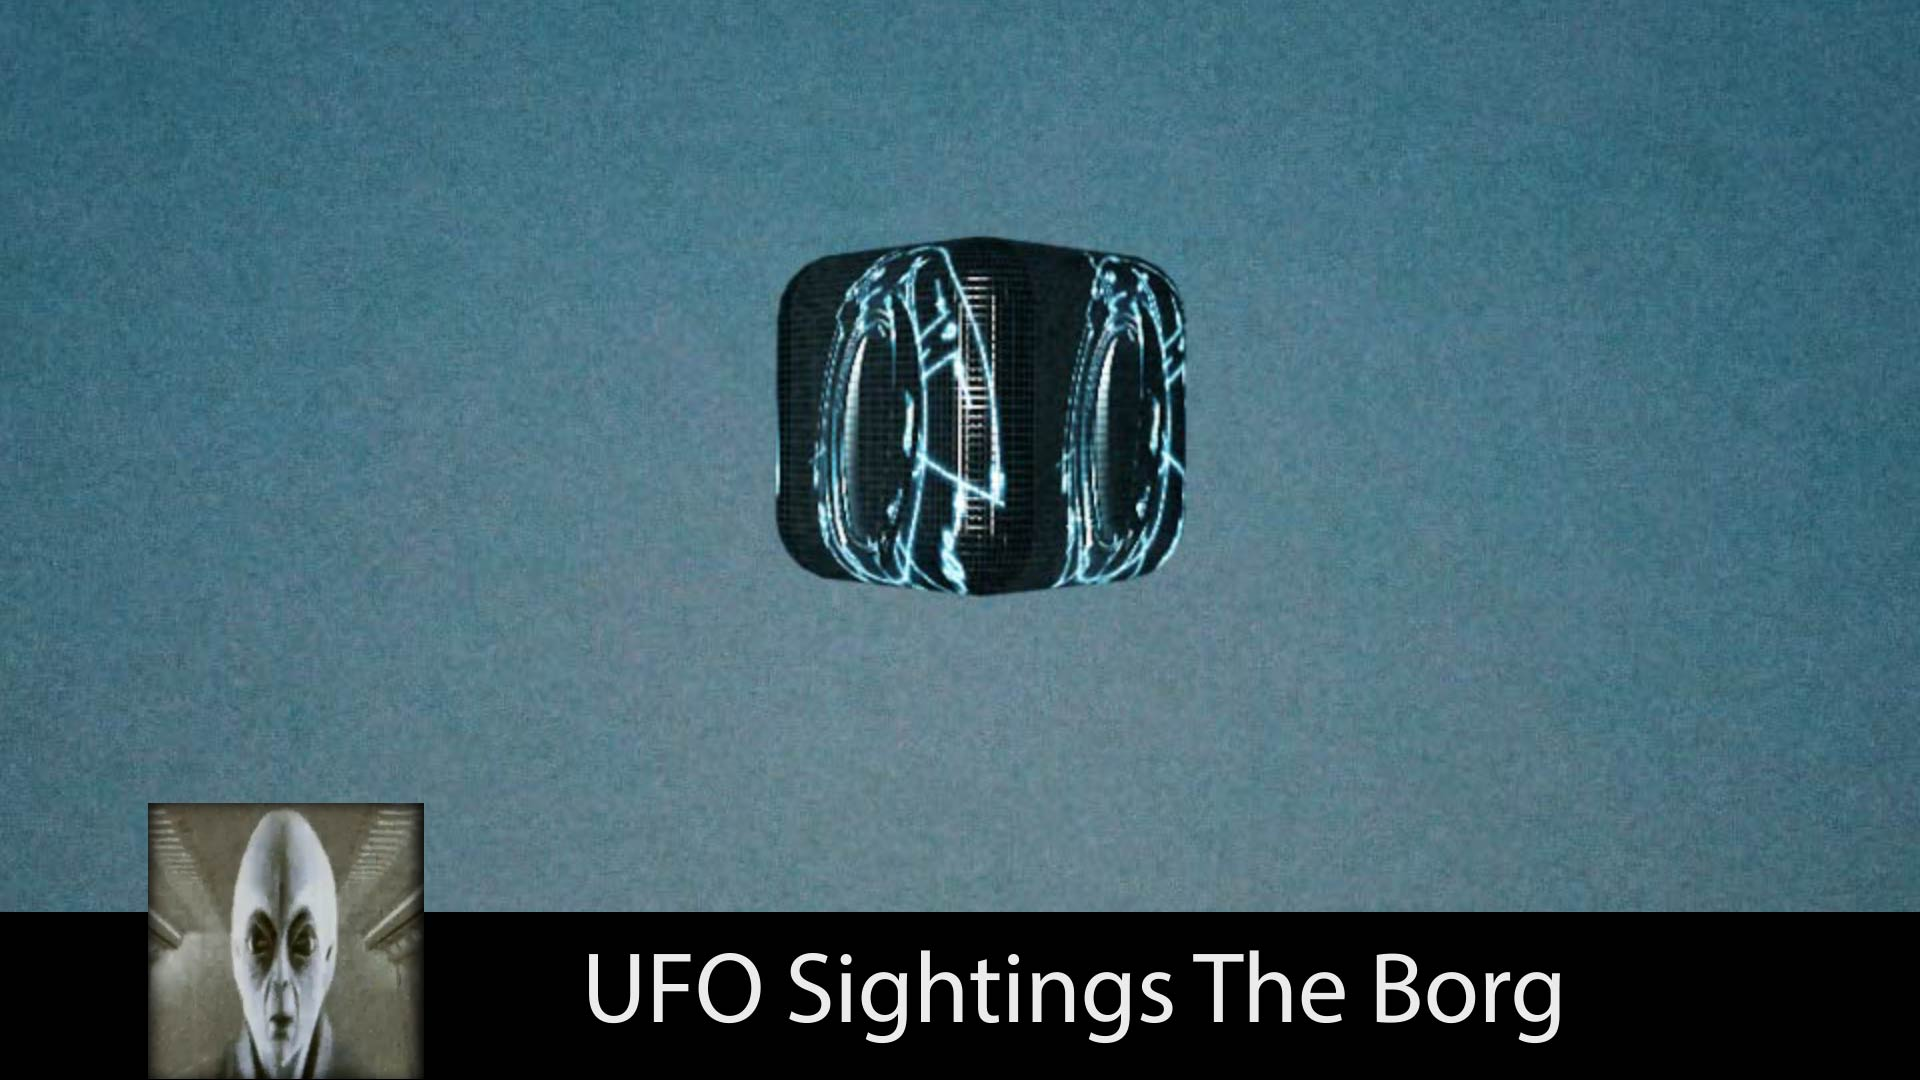 UFO Sightings The Borg October 27th 2017